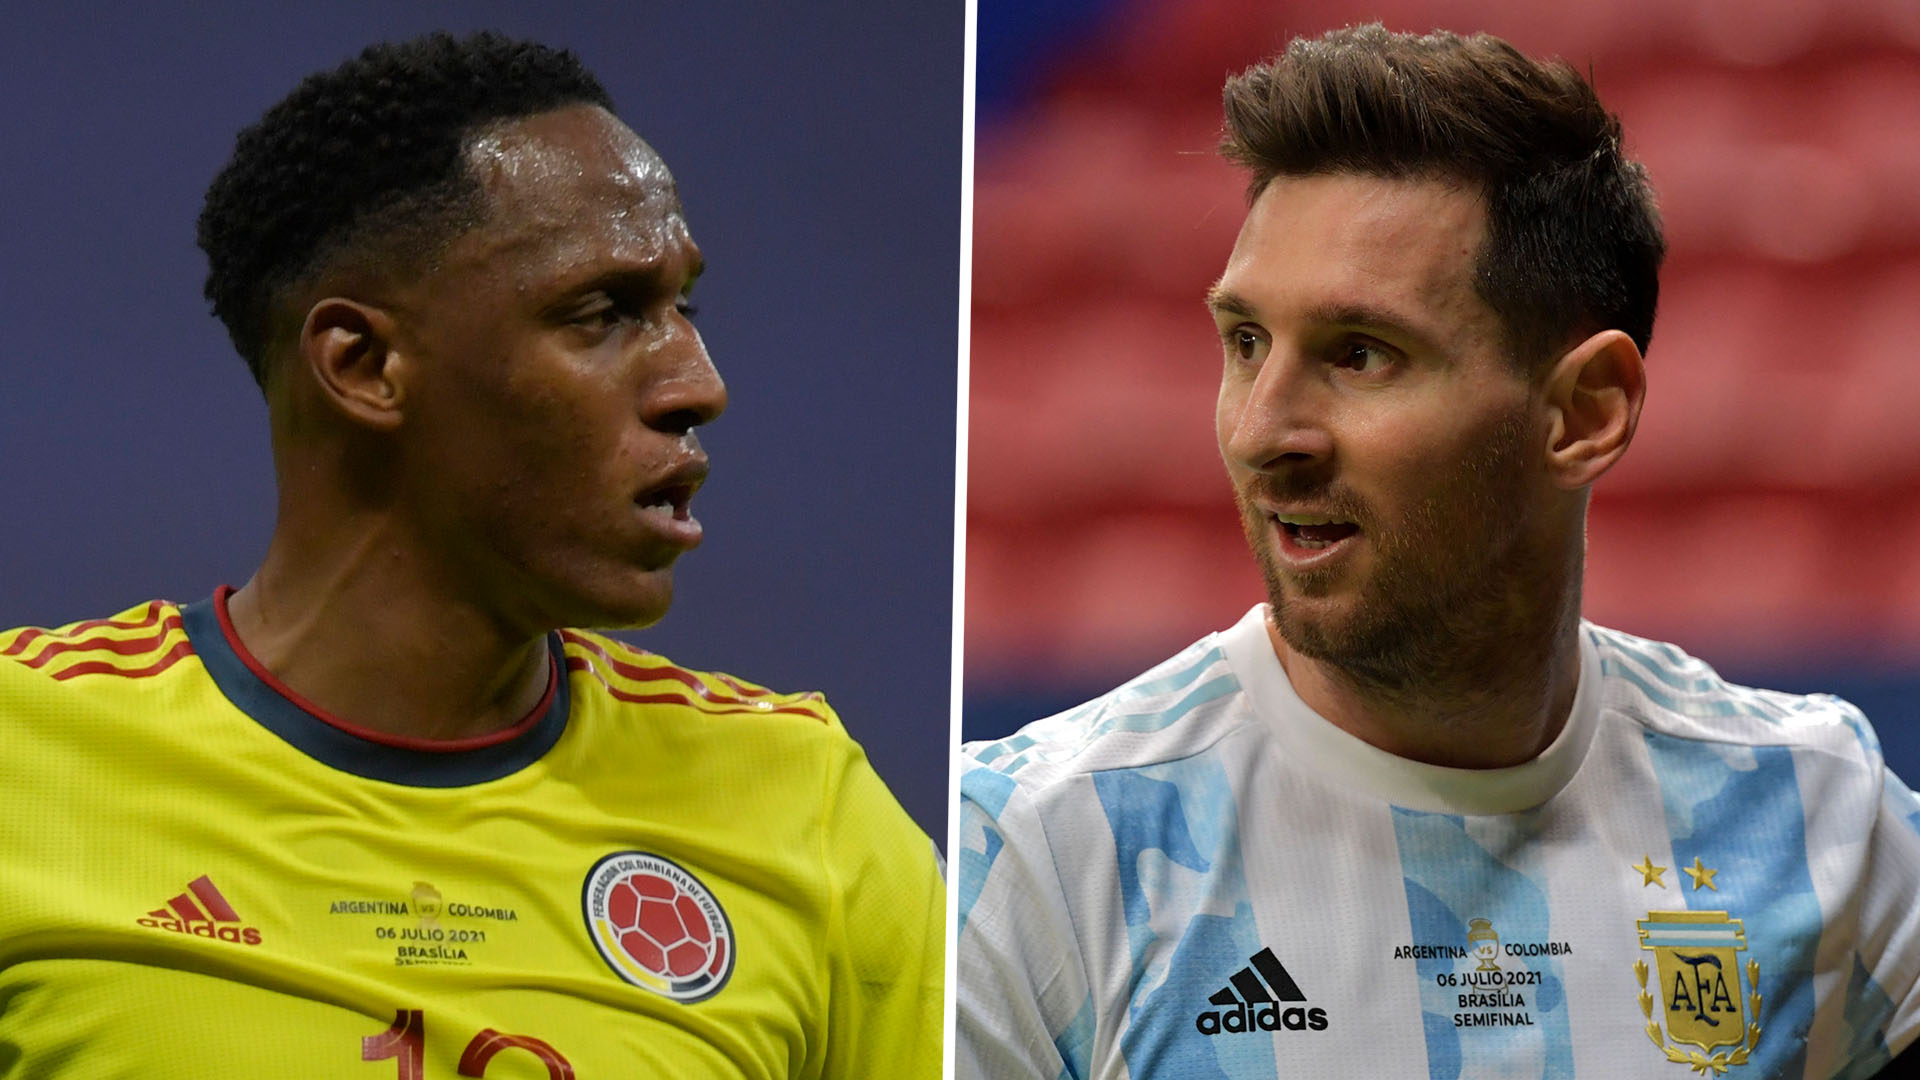 'I will always respect Messi' - Mina not angry at Barca star after Copa America feud